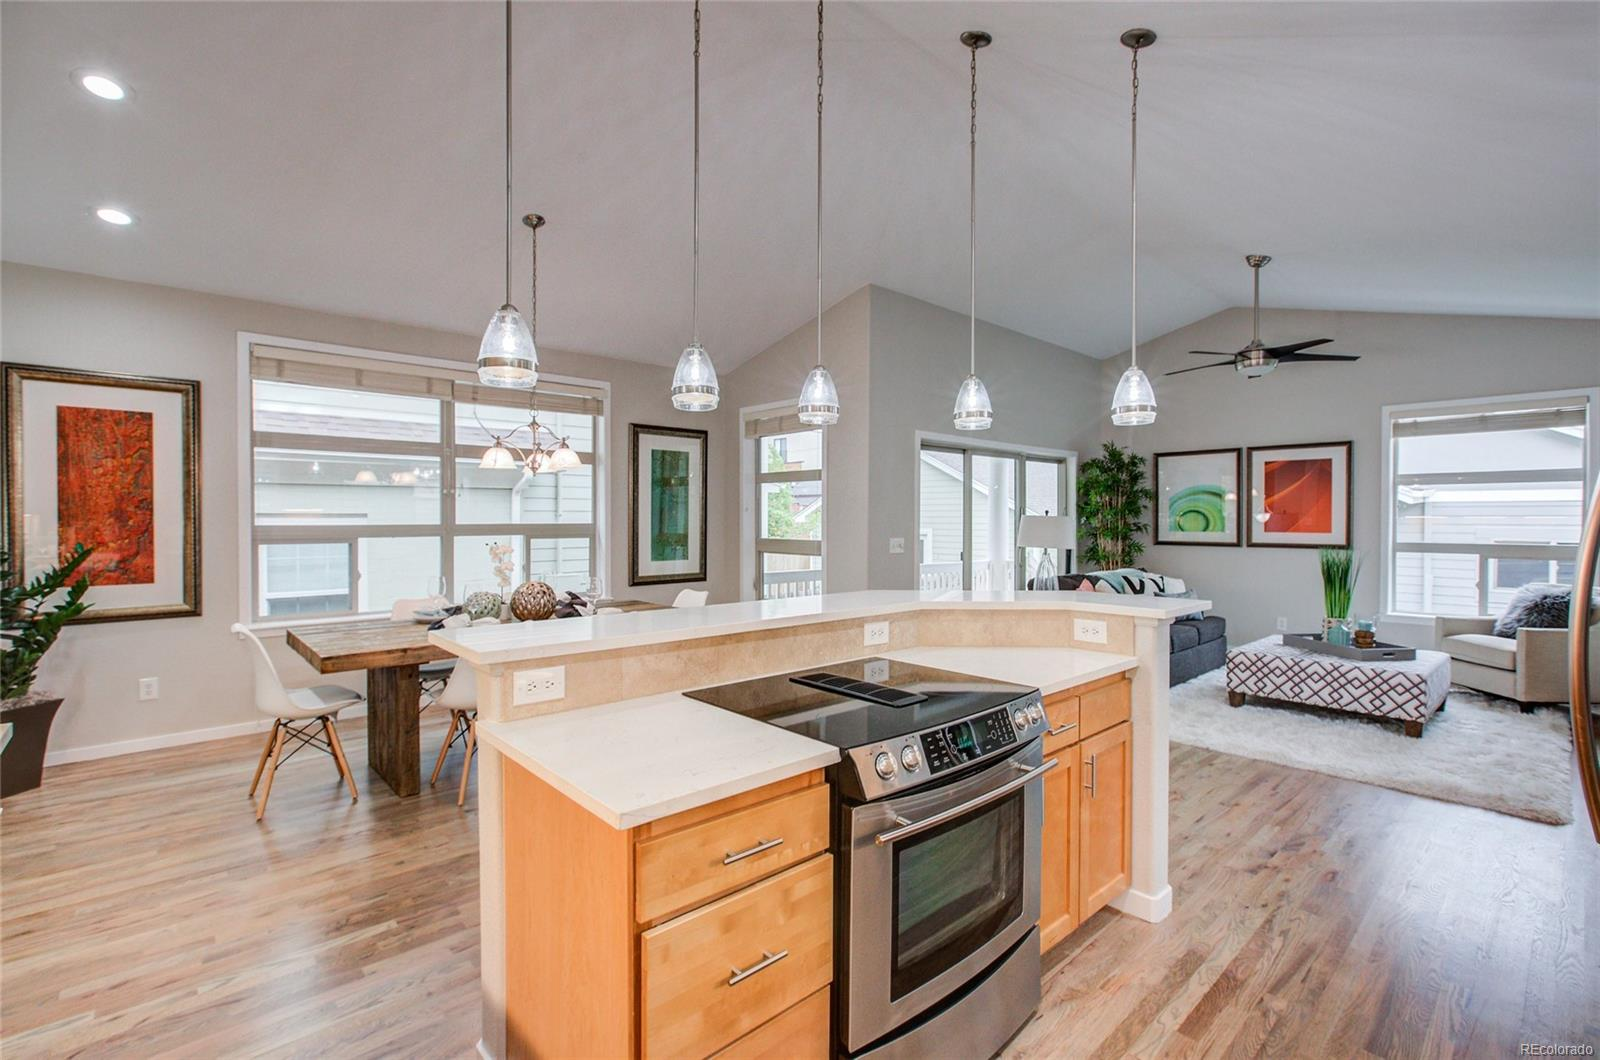 SOLD - July 2019: $769,100